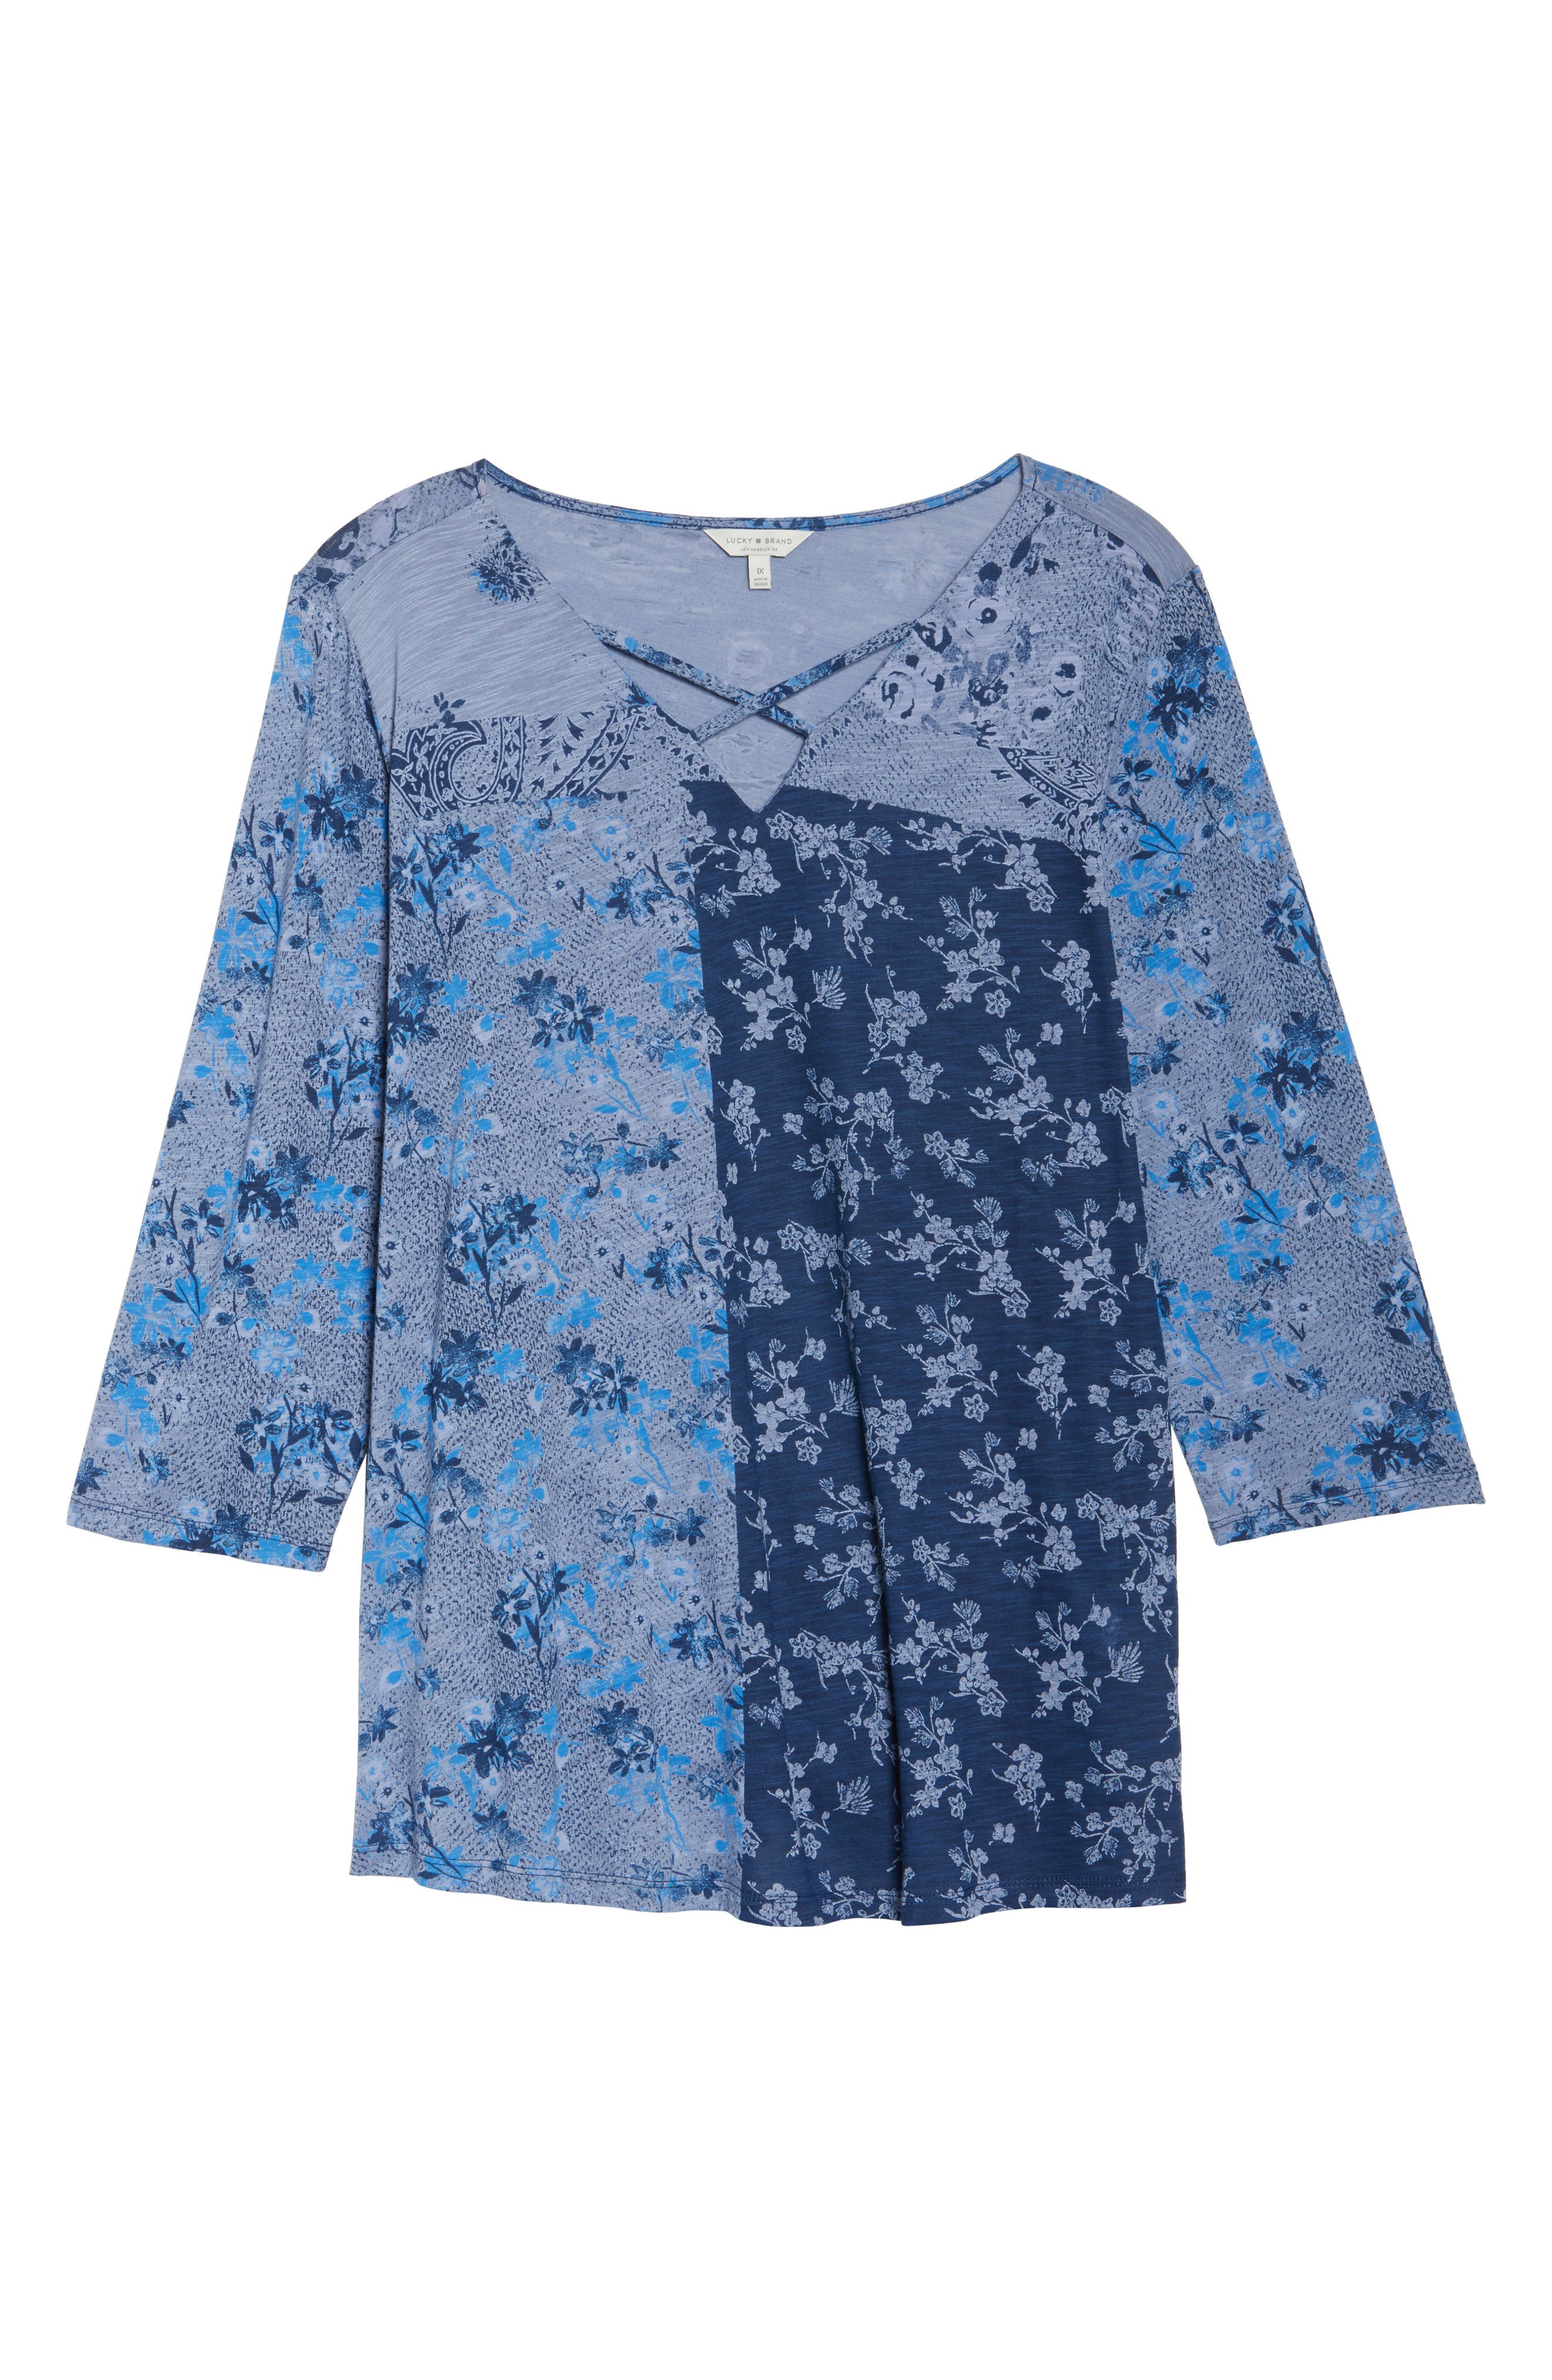 Madeline Floral Top,                             Alternate thumbnail 6, color,                             Blue Multi